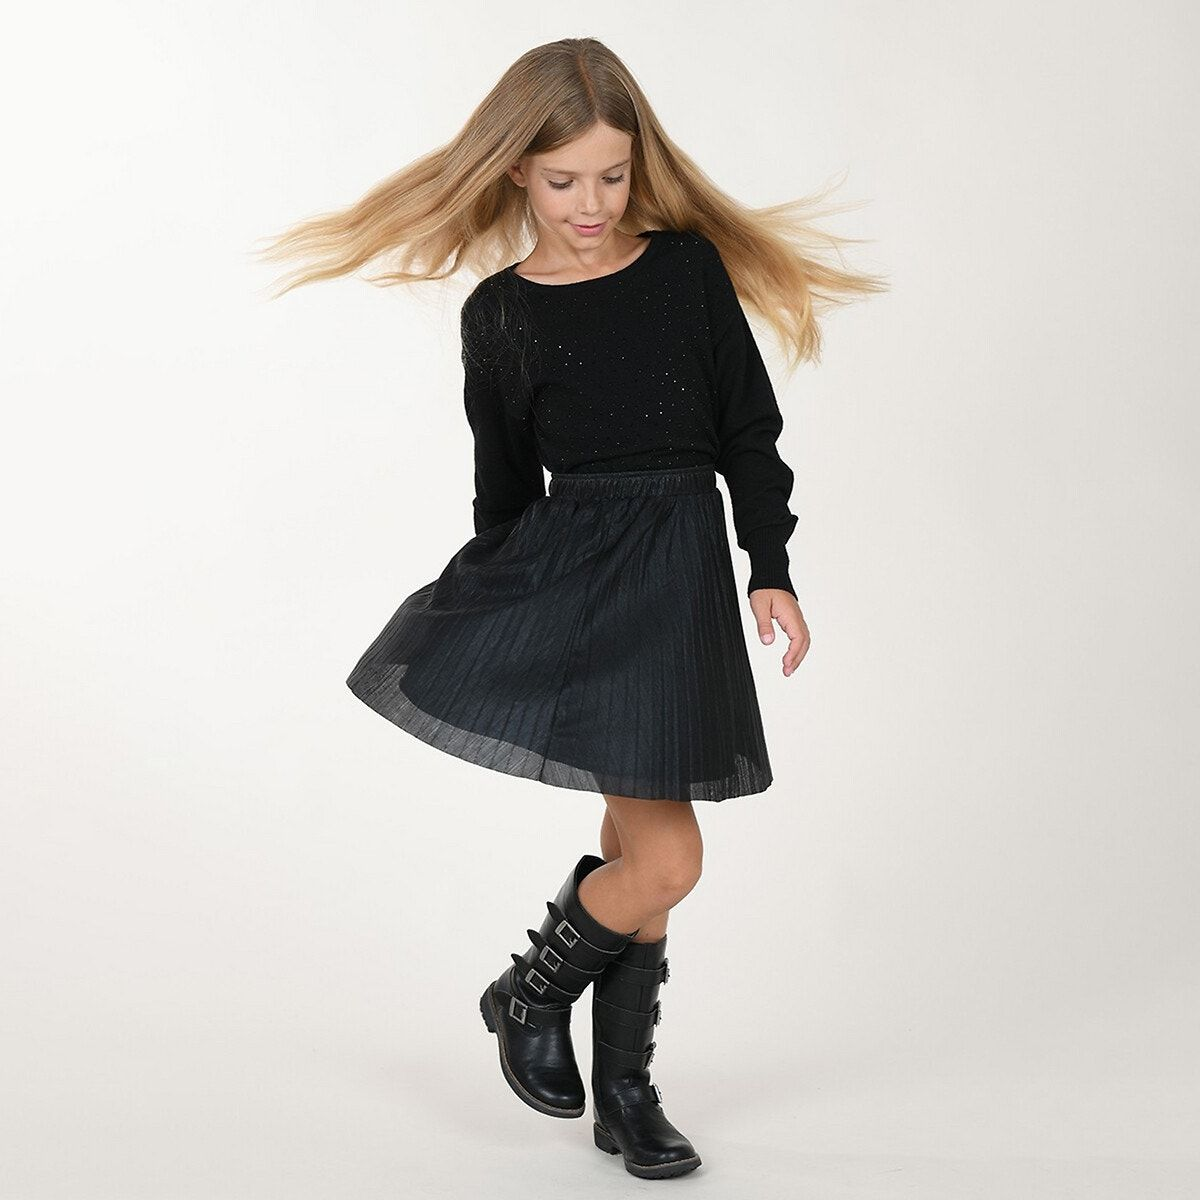 Product details•style: pleated•knee-length•elasticated waist•length: 40cm for age 8/10 yearsfabric content and care advice•100% polyester•please refer to the care instructions on the product label